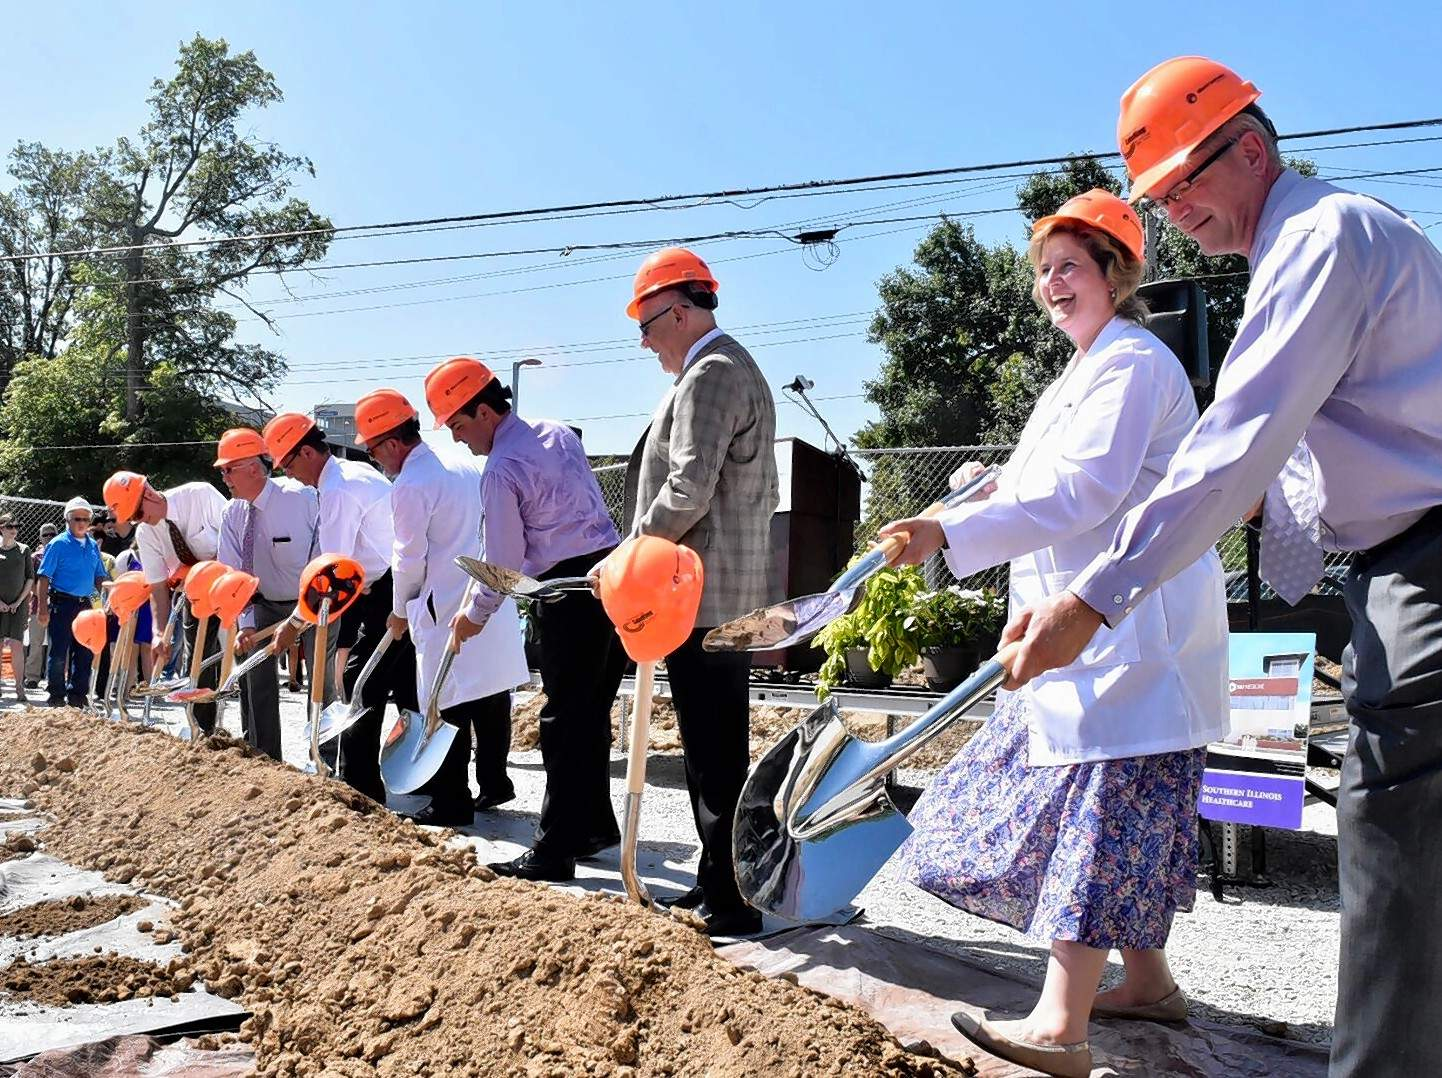 Leaders with SIU and Southern Illinois Healthcare broke ground Tuesday on a new clinic and teaching facility now under construction north of Memorial Hospital of Carbondale.